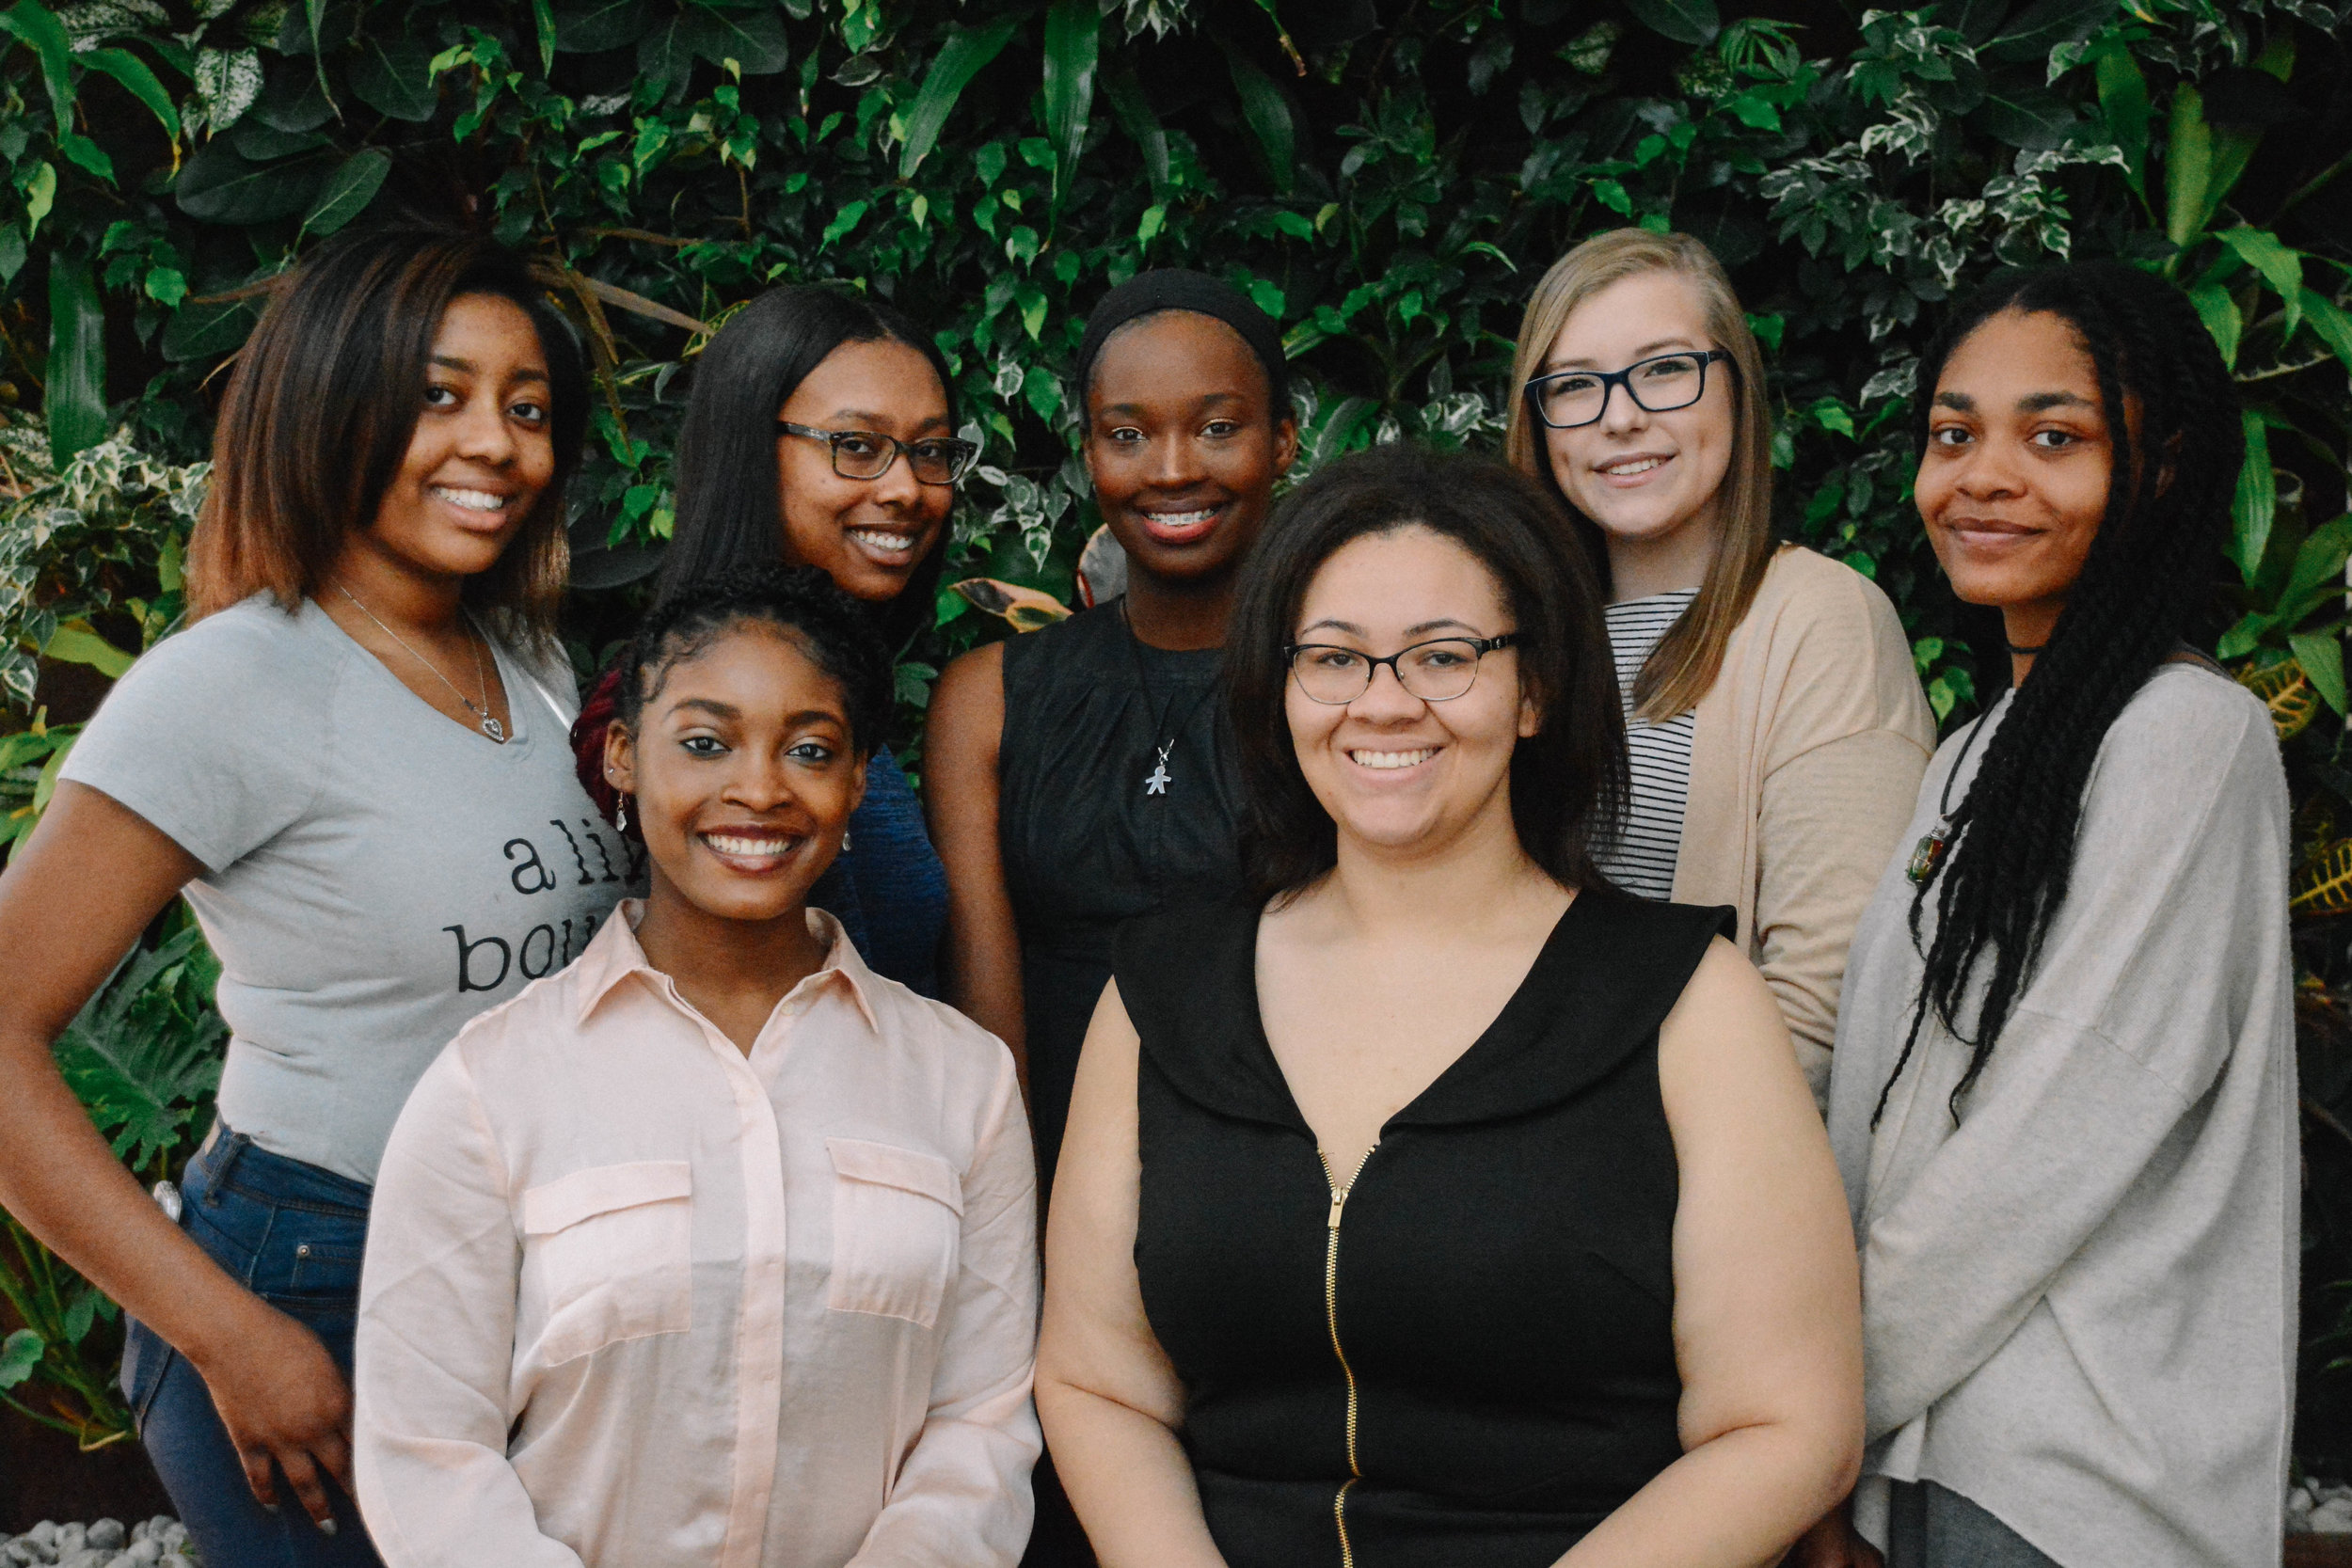 Brains, Beauty, and Benevolence - A student organization empowering women of color to grow personally and professionally through community service and mentorship.ELJONNA WILLIAMS, DAIJHA MORROW, RUBY SIMS